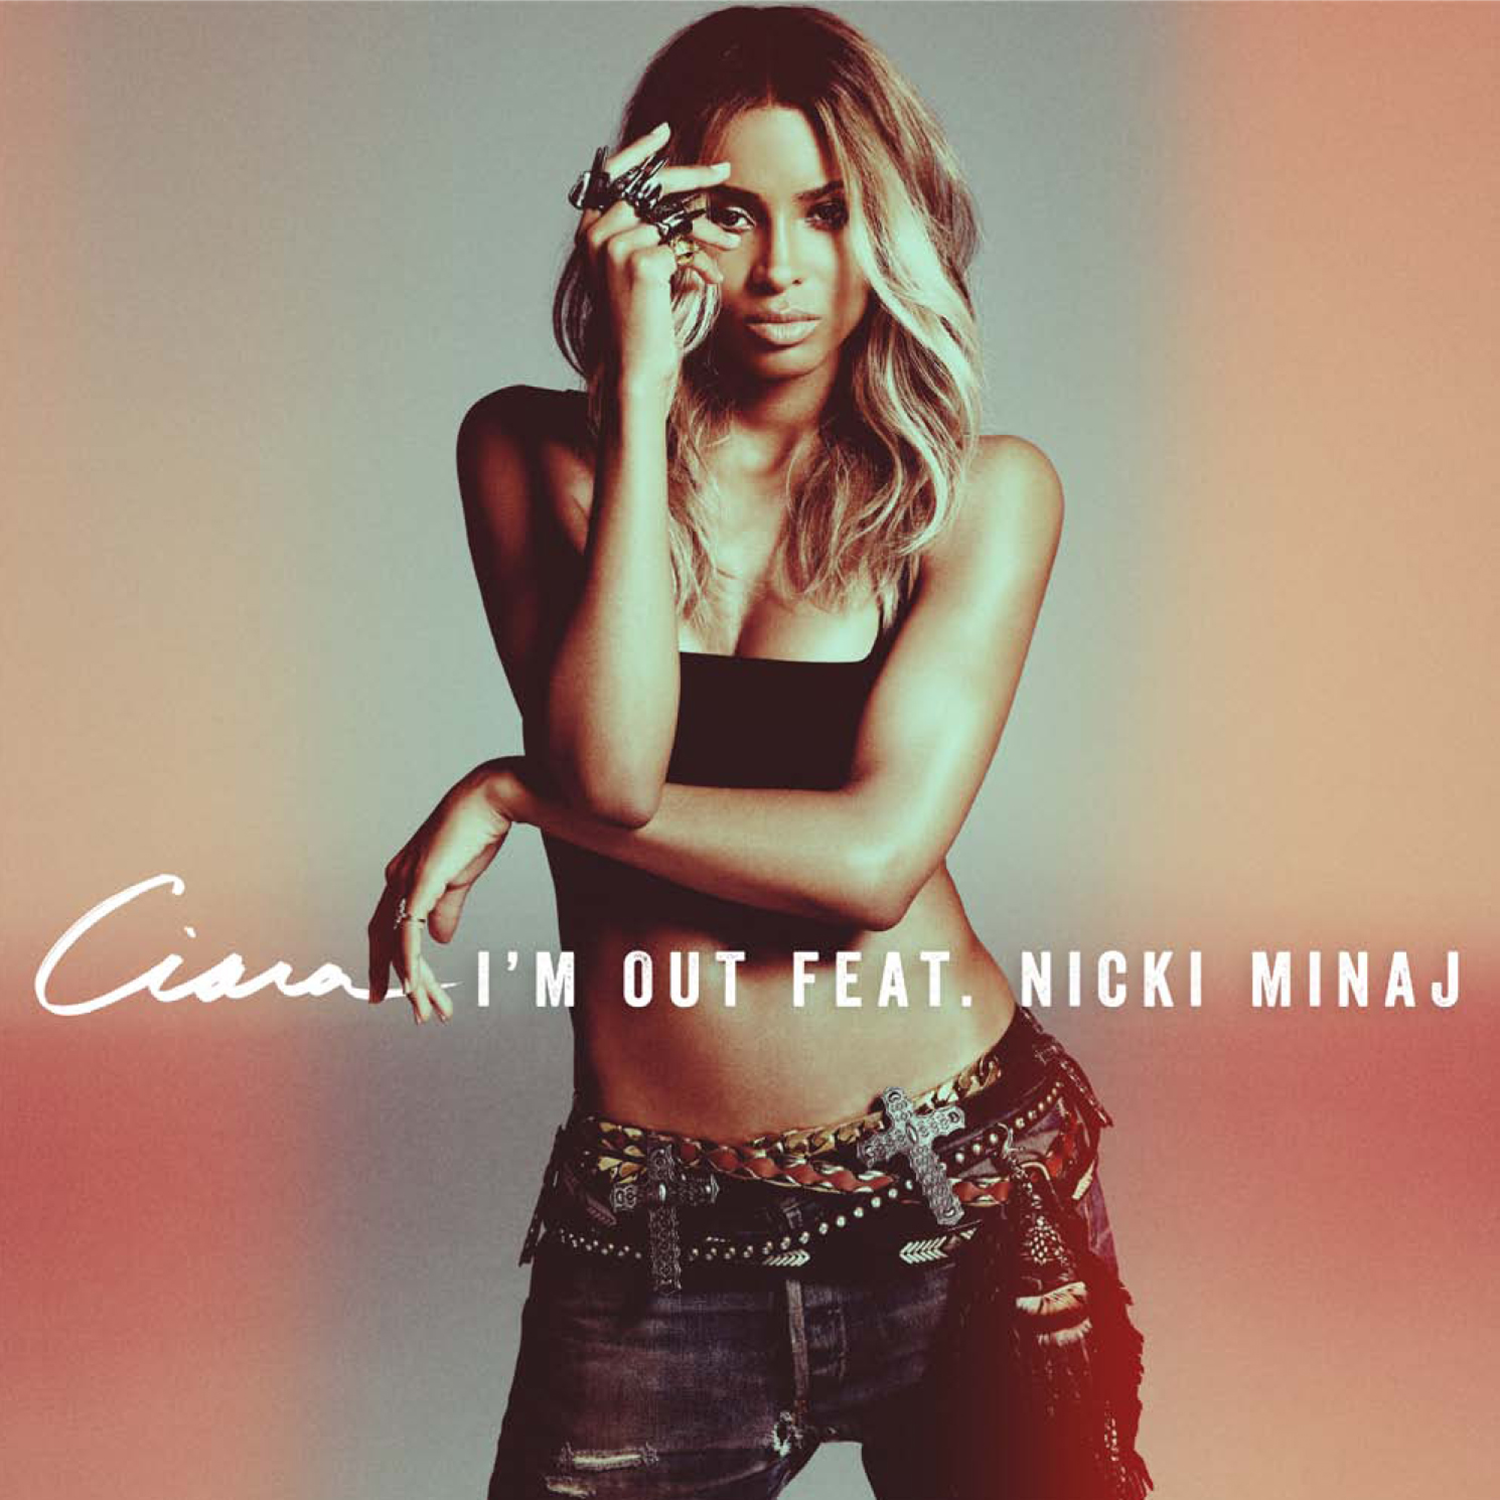 Download Ciara - I'm Out (Feat. Nicki Minaj) MP3 Grátis